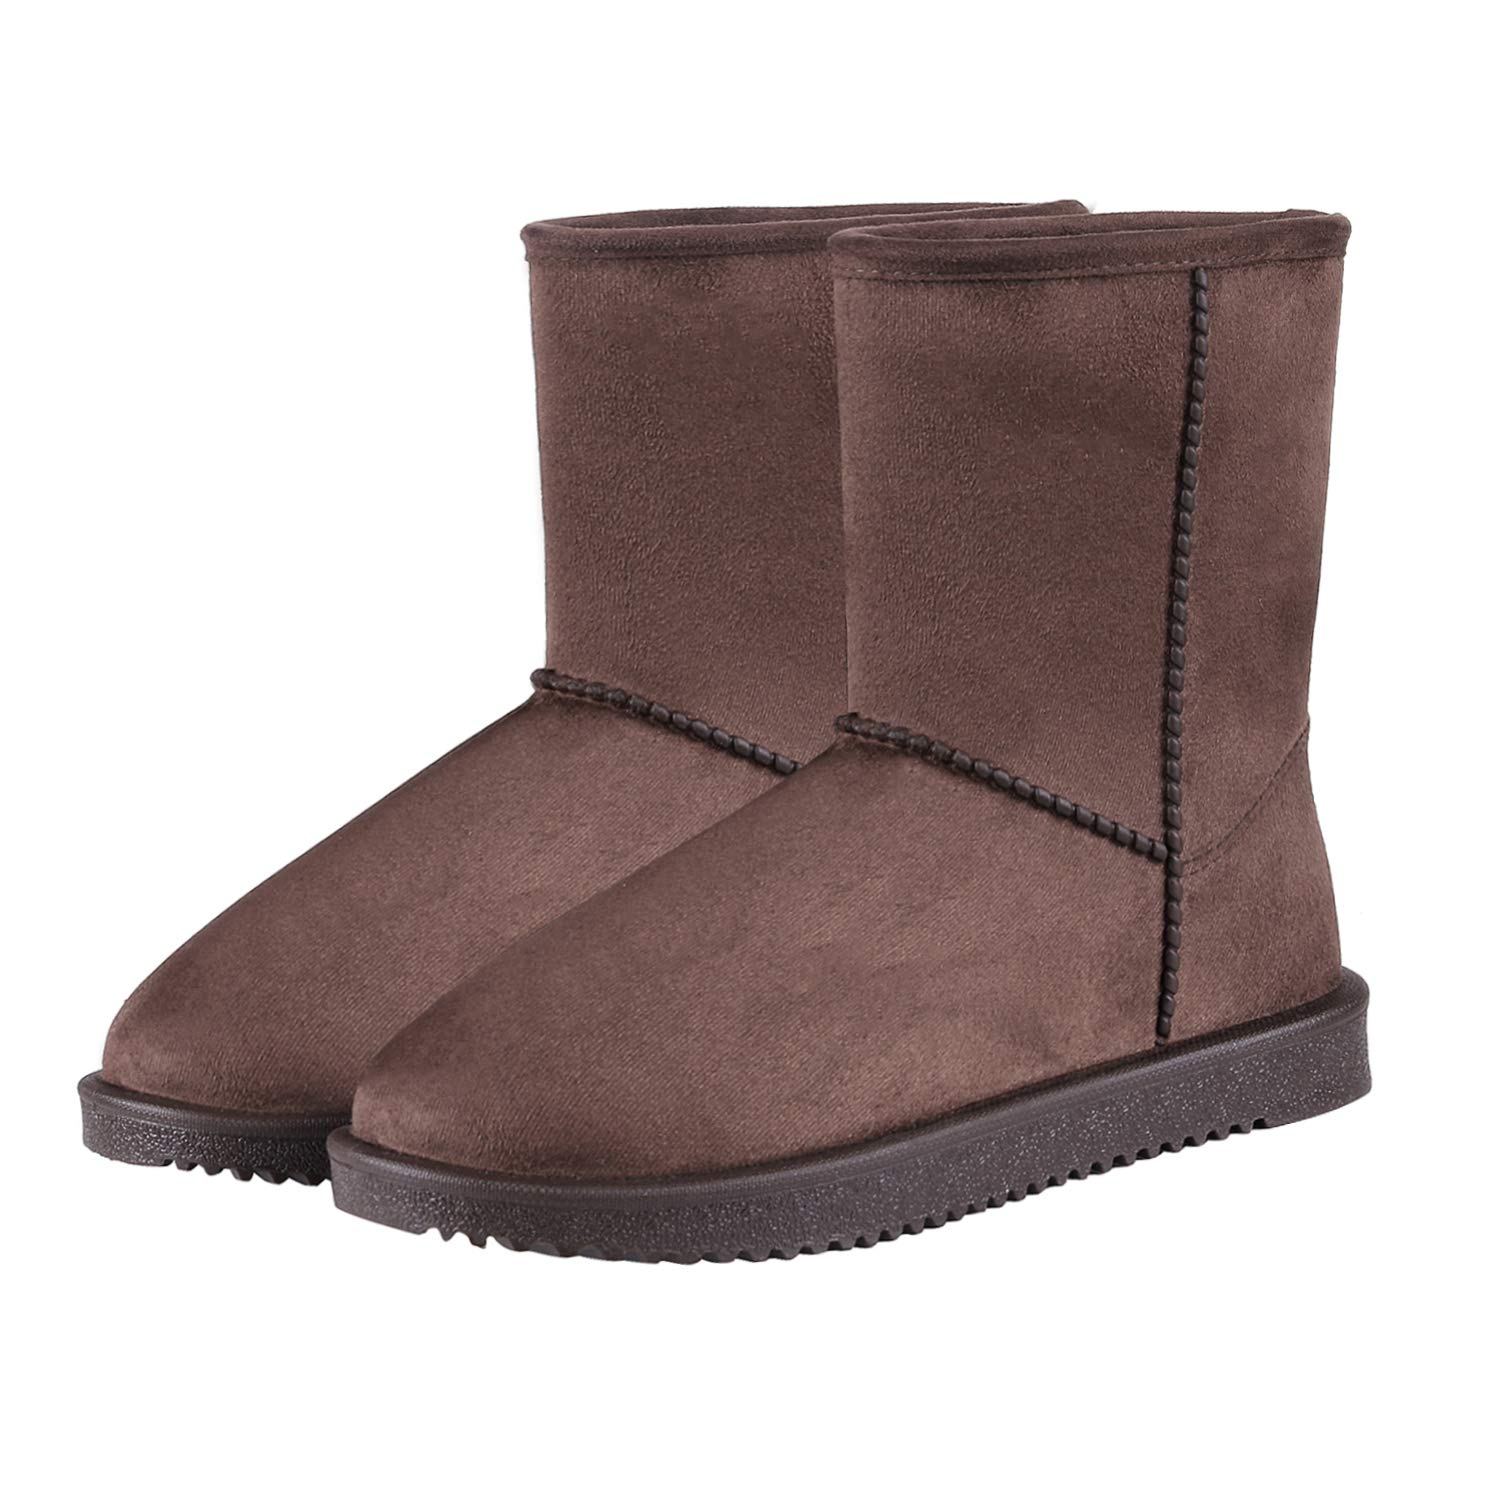 Brown Mid-calf Women's Mid Calf Snow Boots Waterproof Classic Fur Lined Shearling Winter Boots